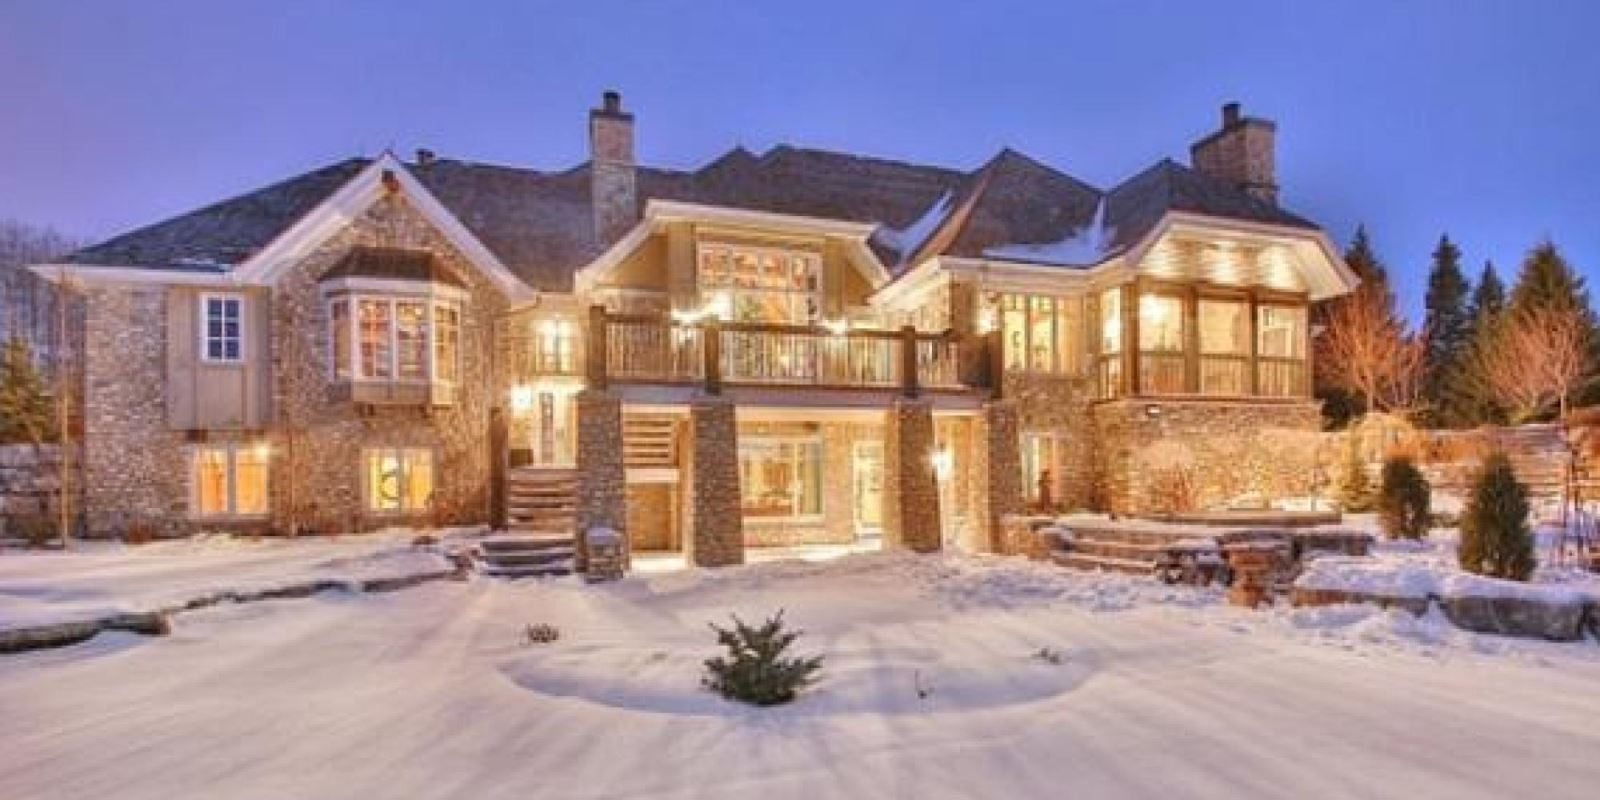 Most expensive house for sale in Canada revealed